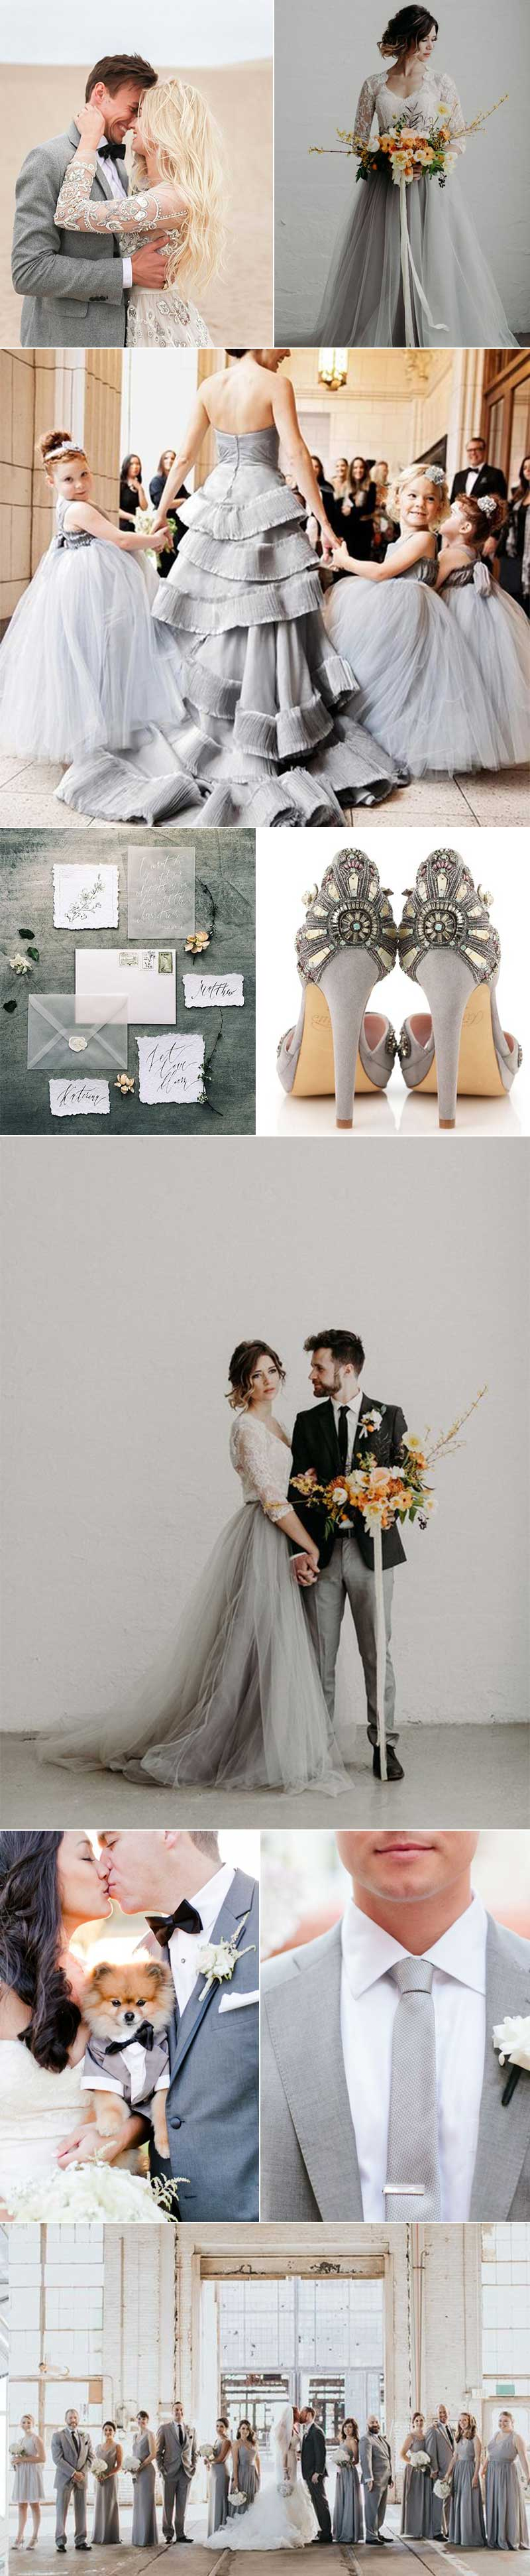 Weddings In Slate Gray